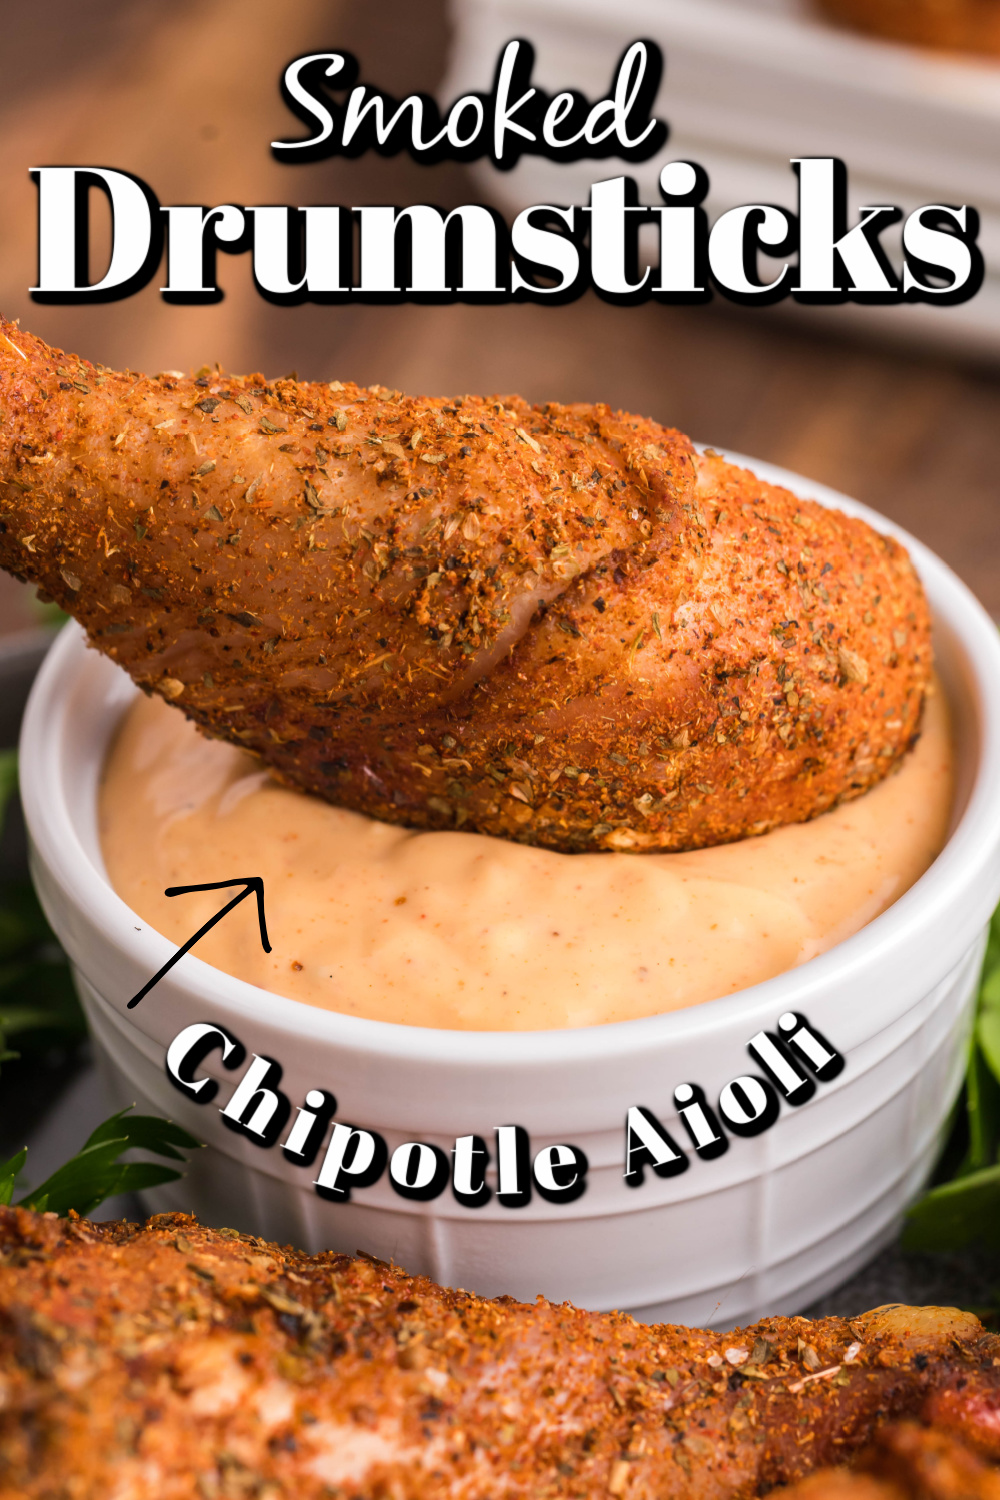 These dry rub smoked chicken drumsticks with a chipotle dipping sauce are wonderfully flavorful, tender and juicy!